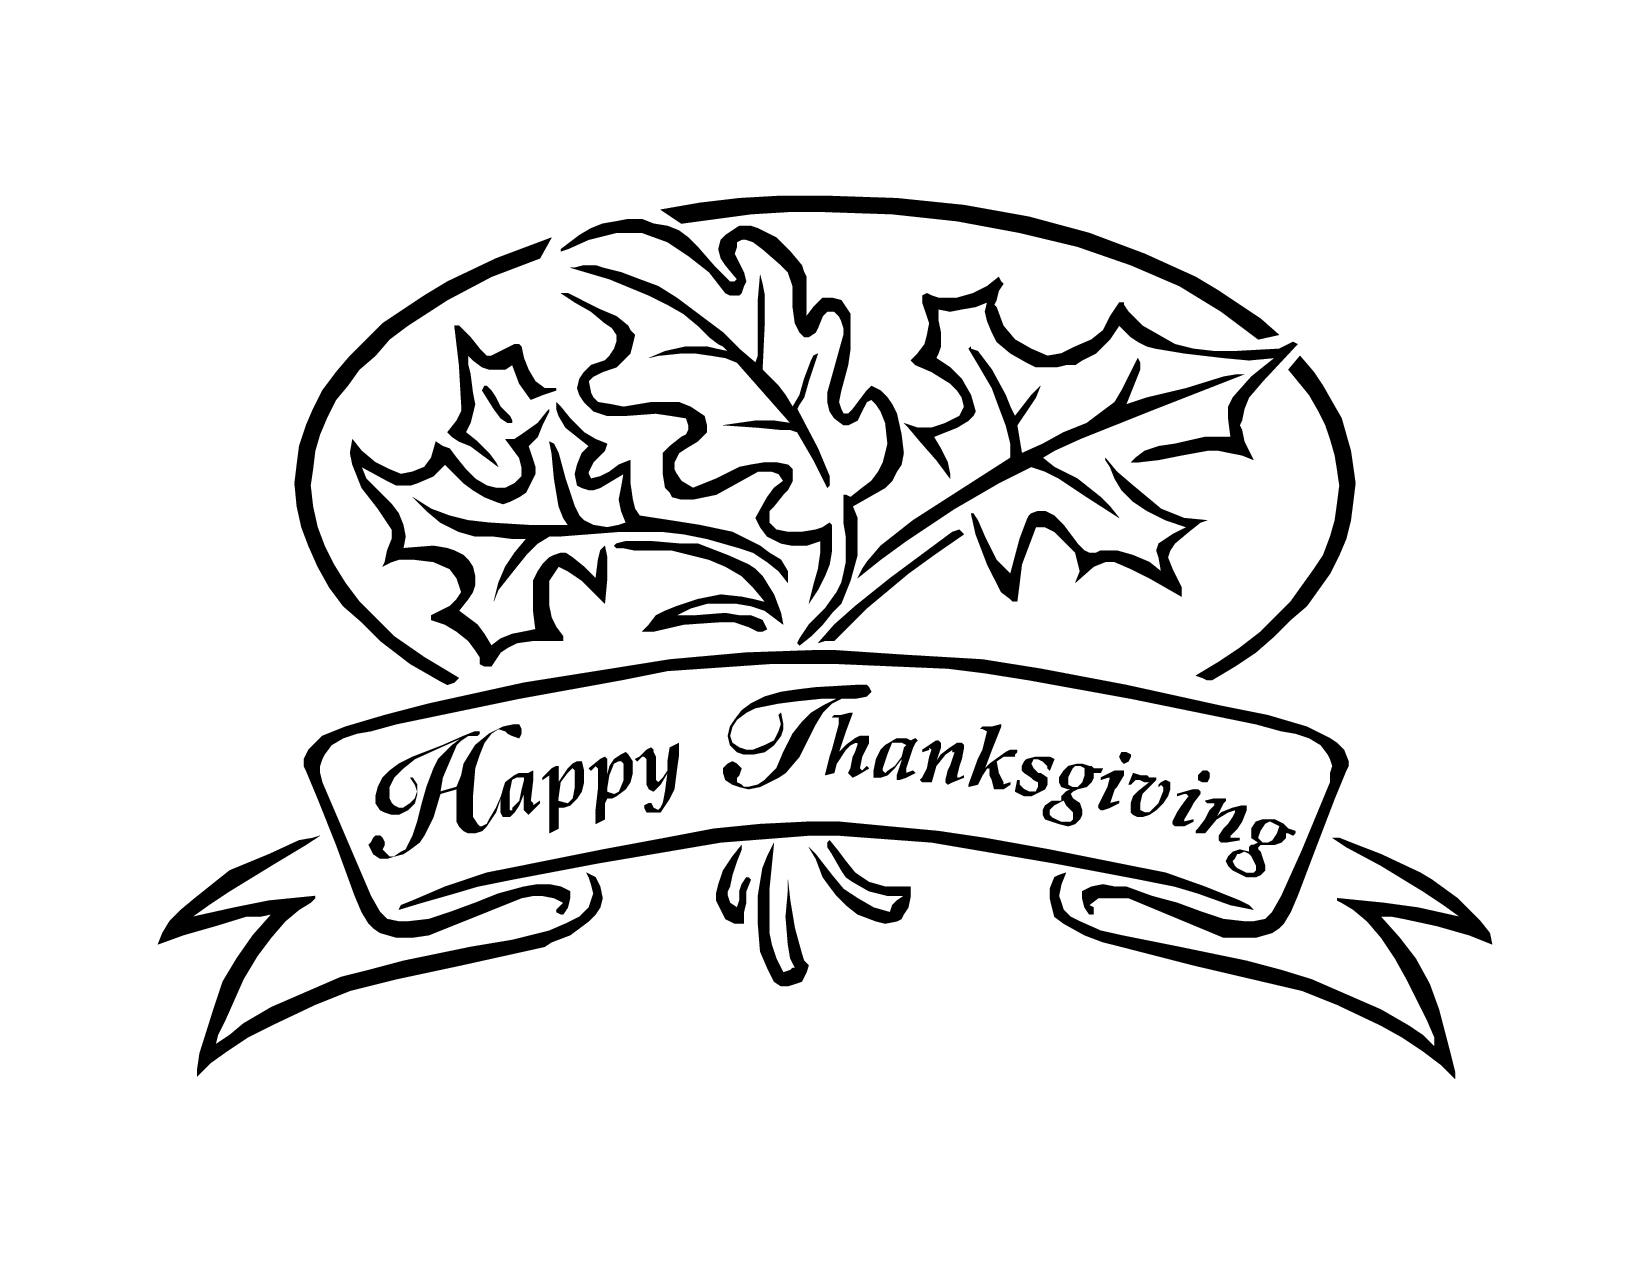 Cool Thanksgiving Coloring Pages For Children | Thanksgiving and ...